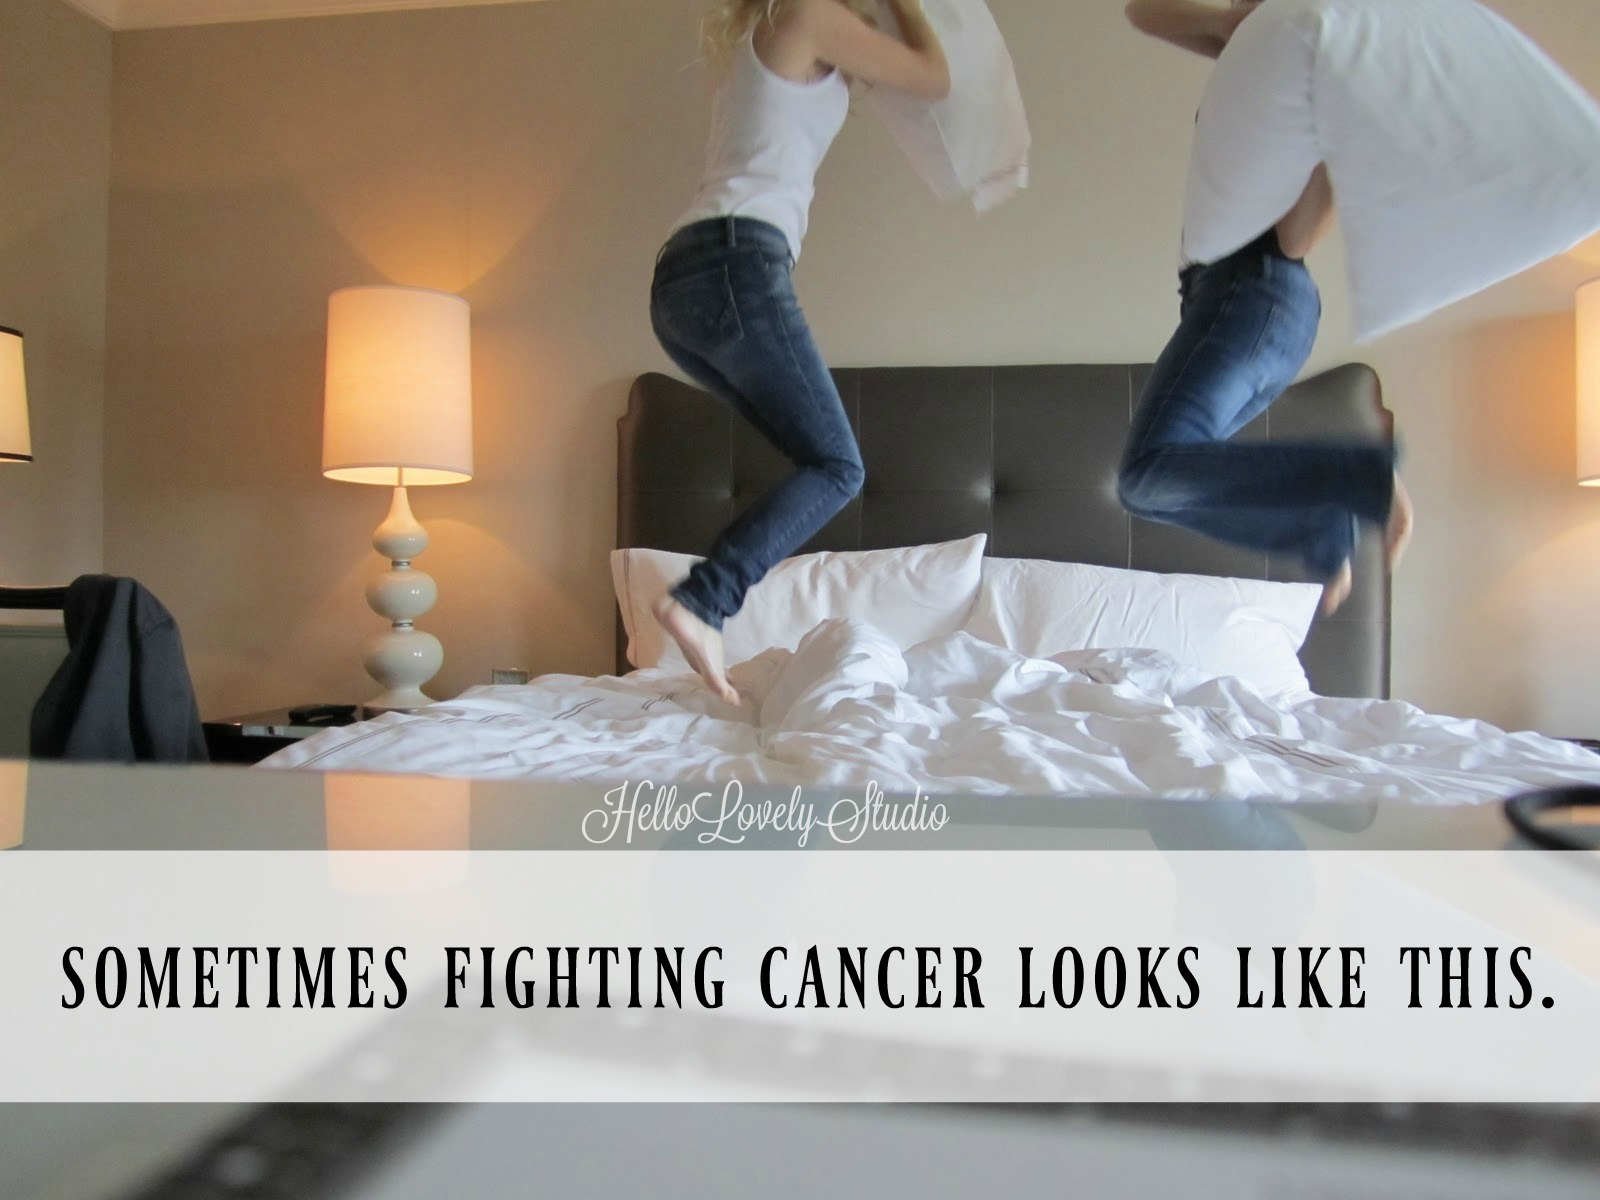 Breast Cancer Previvor - Inspiring Breast Cancer Image and Quote. Two women jumping on bed and having pillow fight. Sometimes fighting cancer looks like this. #BRCA #cancer #previvor #breastcancer